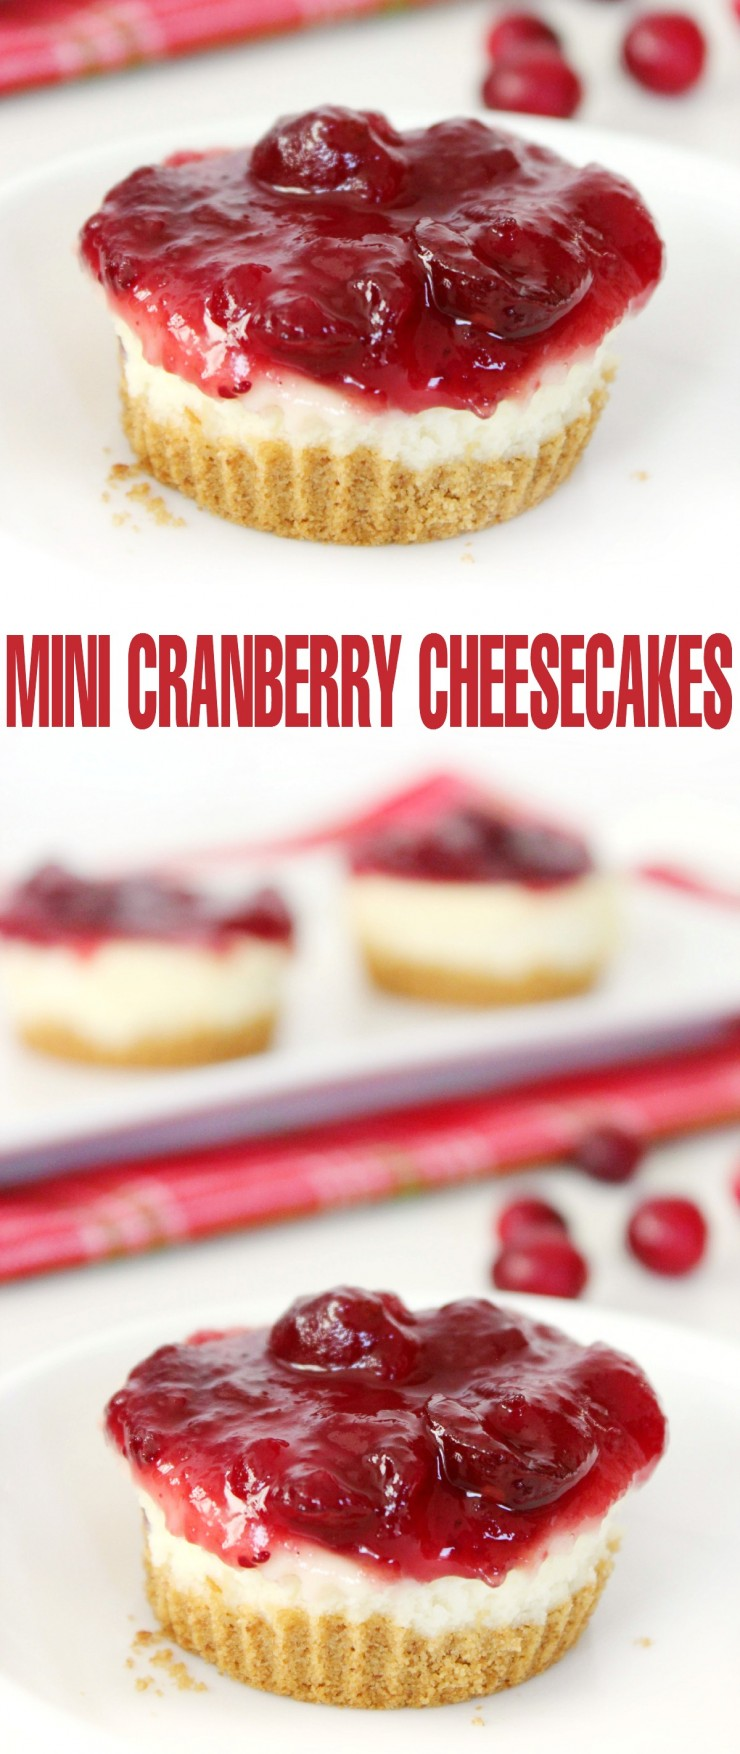 Mini Cranberry Cheesecakes are a great dessert to serve at Thanksgiving or Christmas and you won't believe how easy this recipe is!